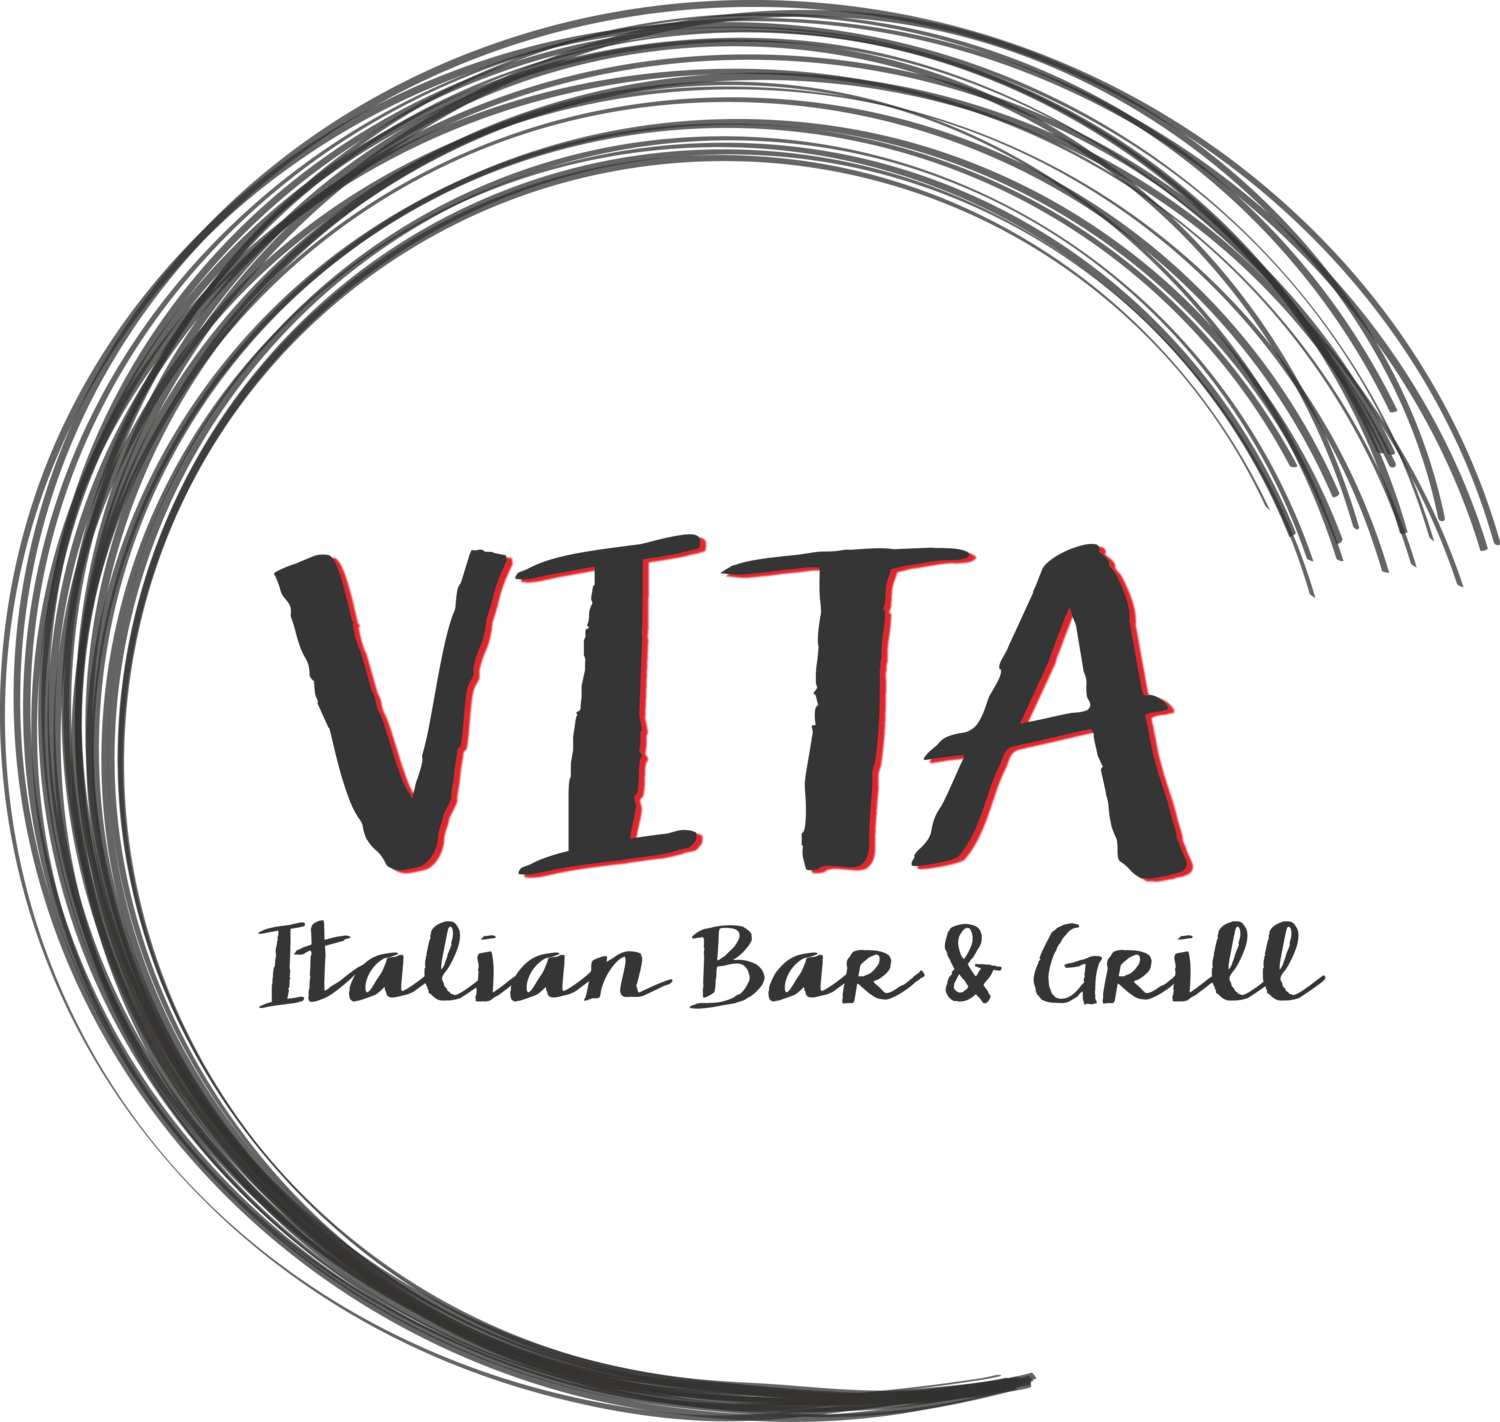 VITA Italian Bar & Grill – Farm to Table Restaurant